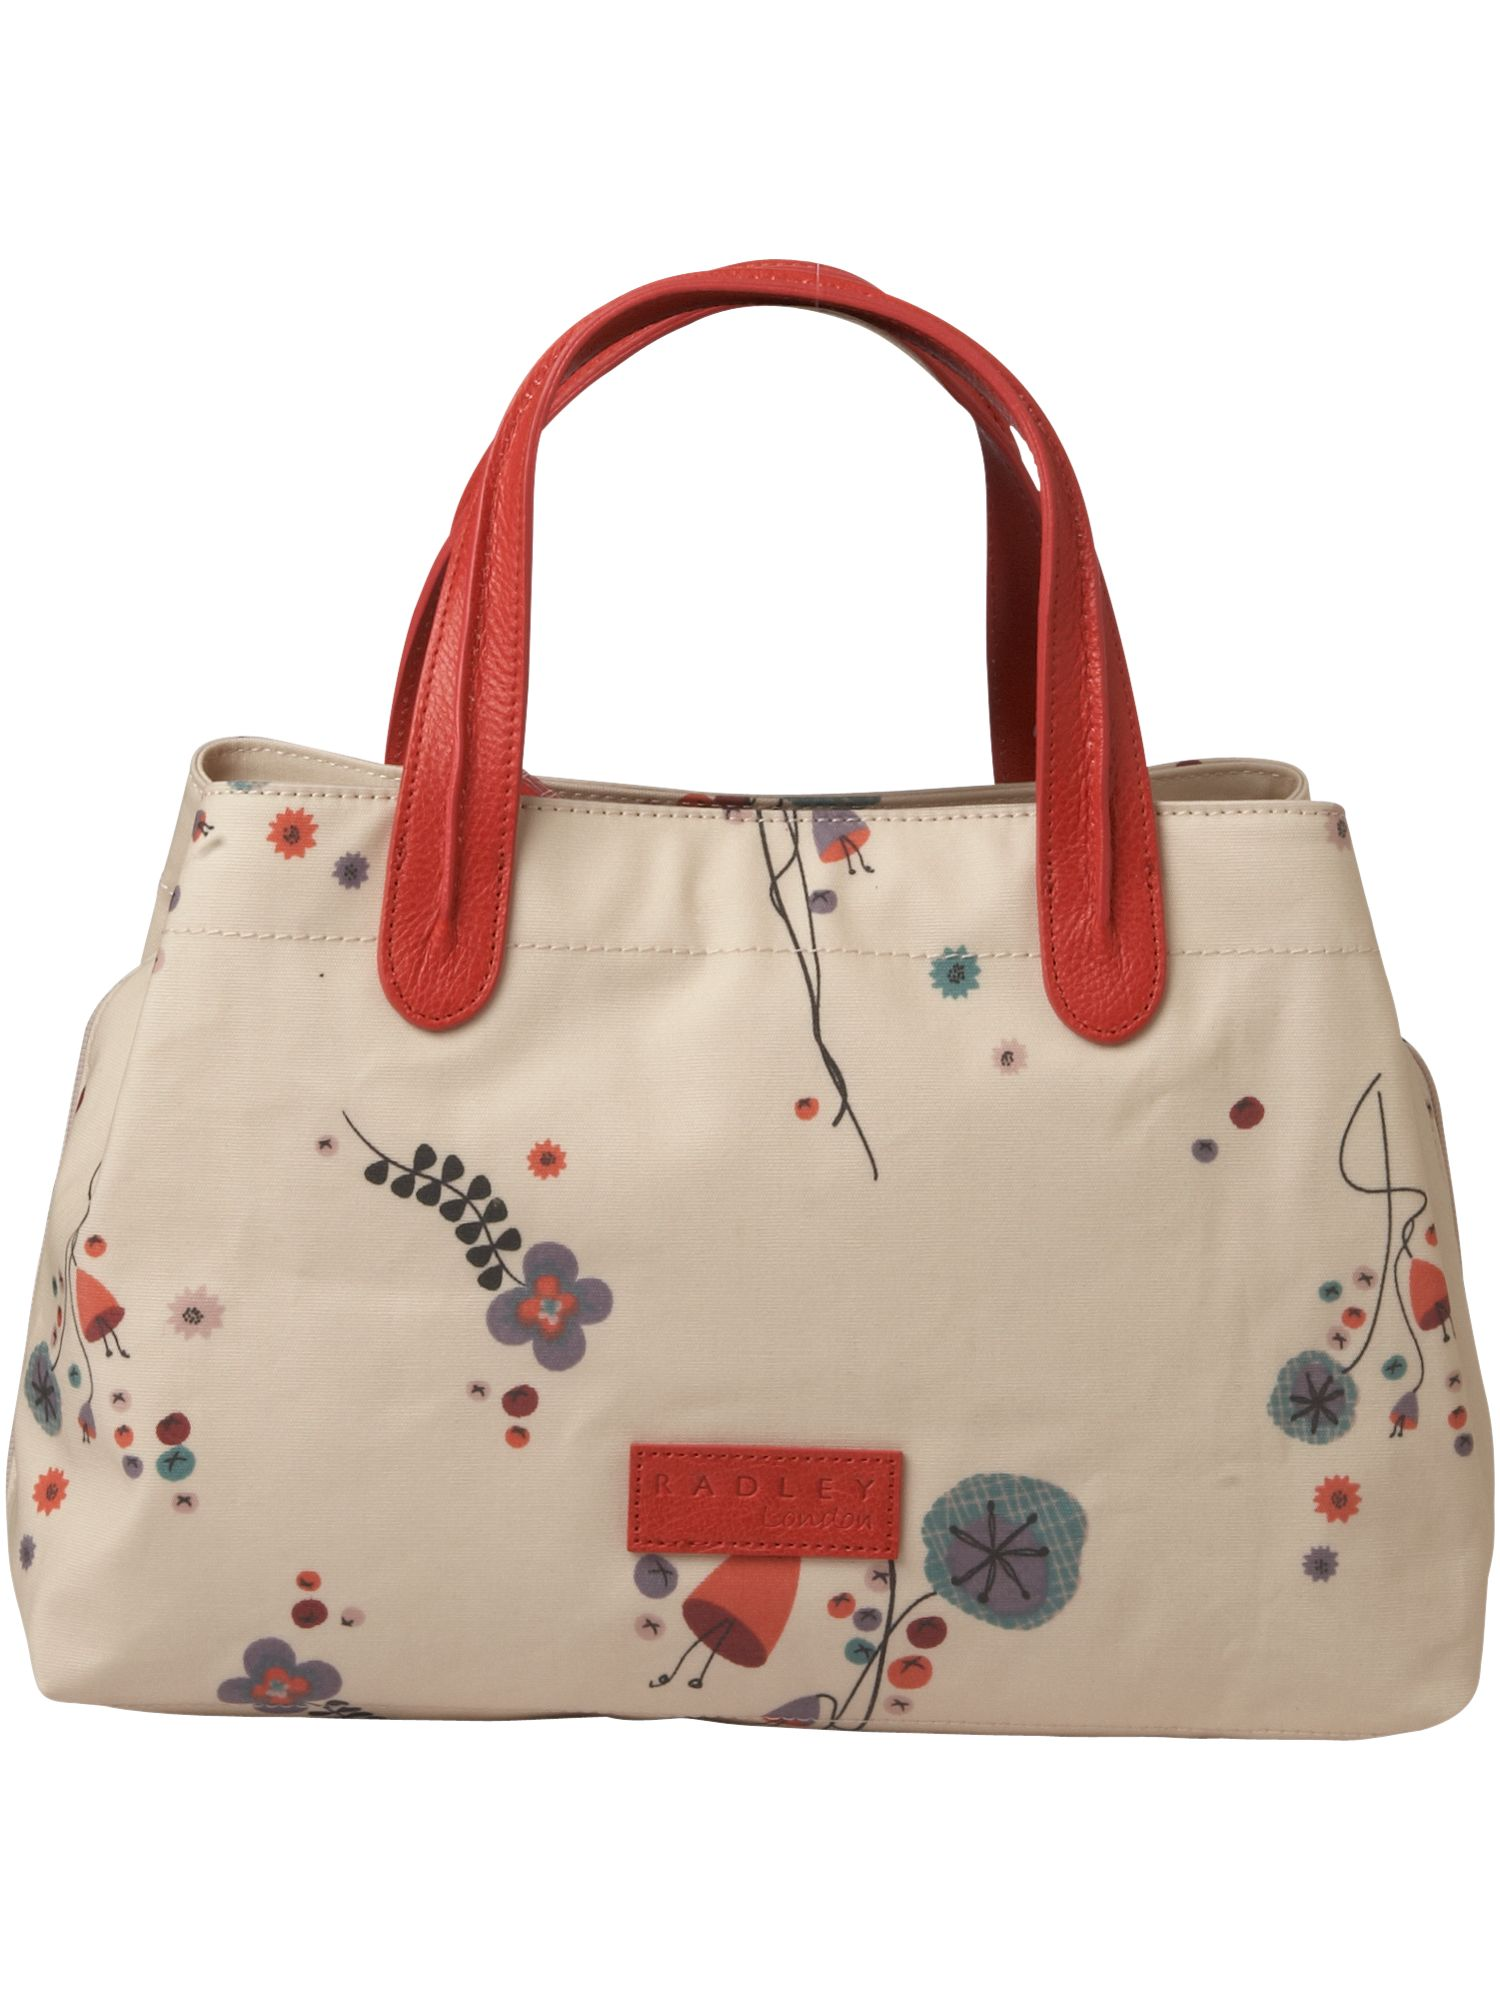 Vanessa hand held Tote bag